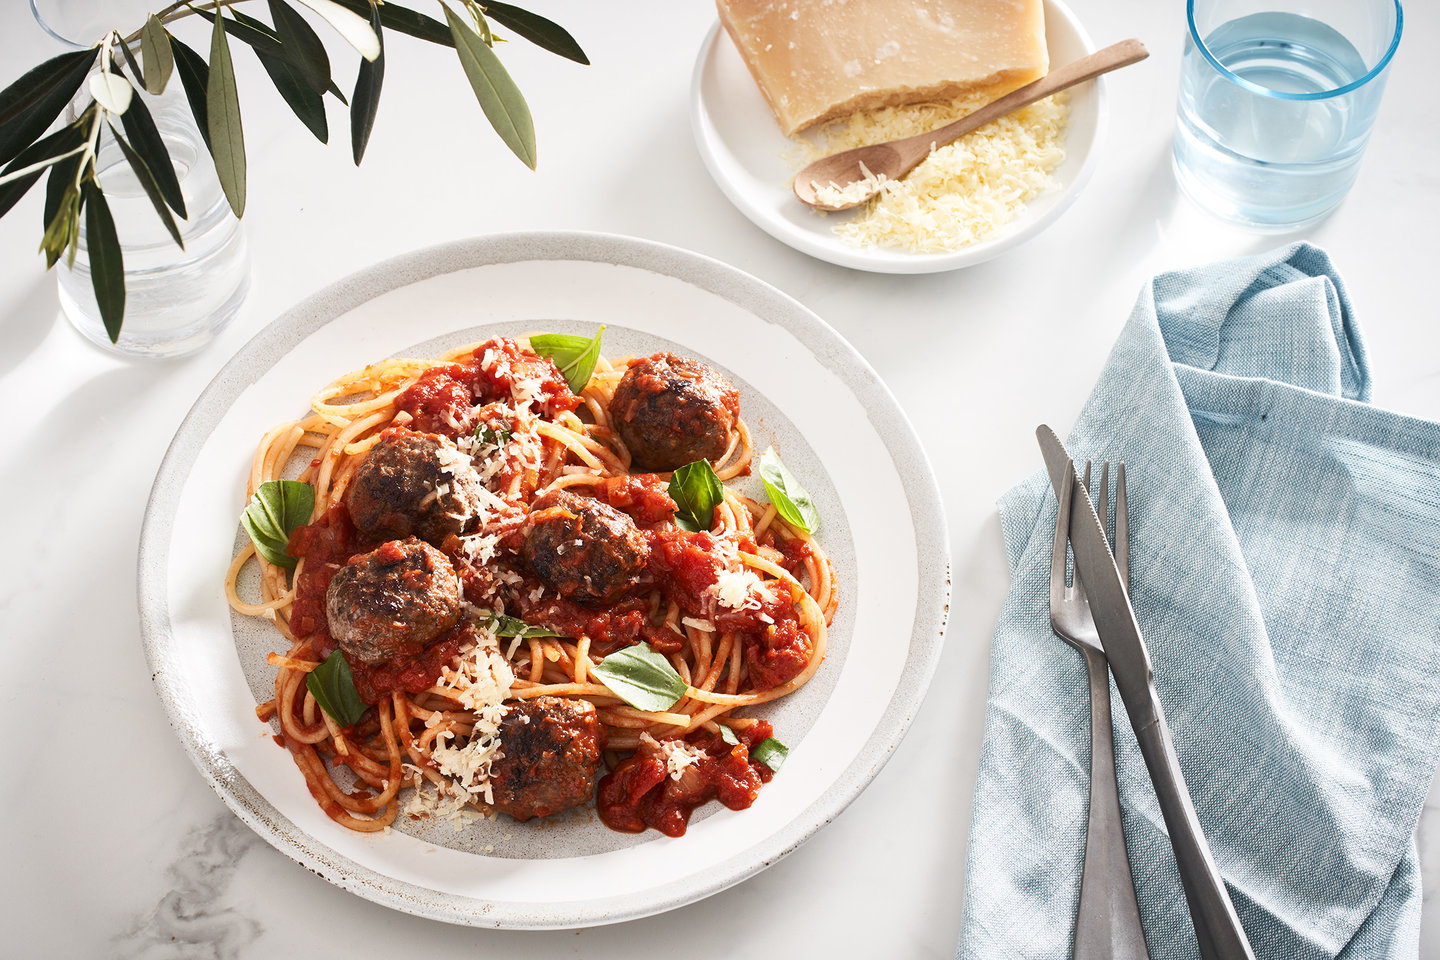 Hero image for First Light old-school Italian spaghetti 'n' meatballs